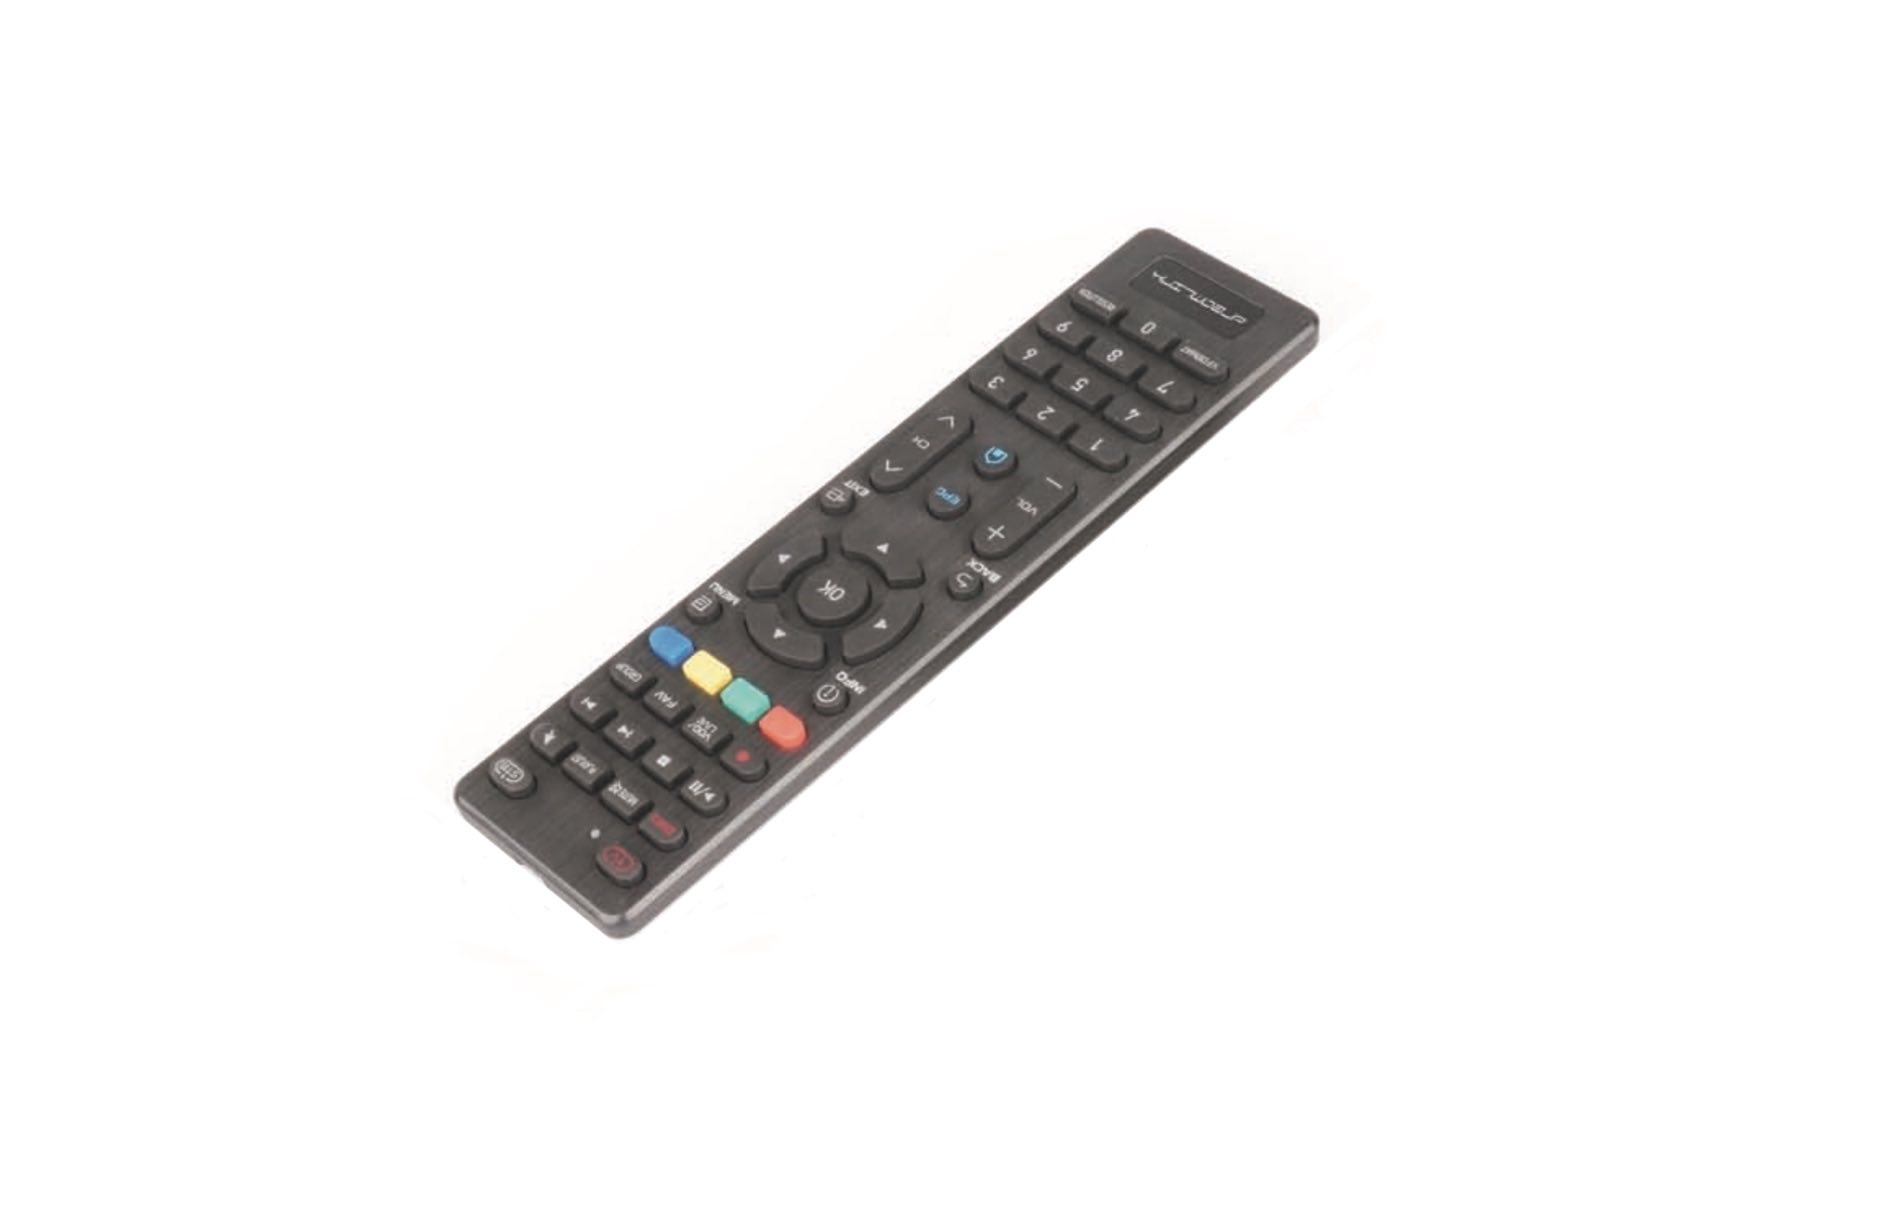 Dreamlink remote control replacement for T2, T1 & T1 plus